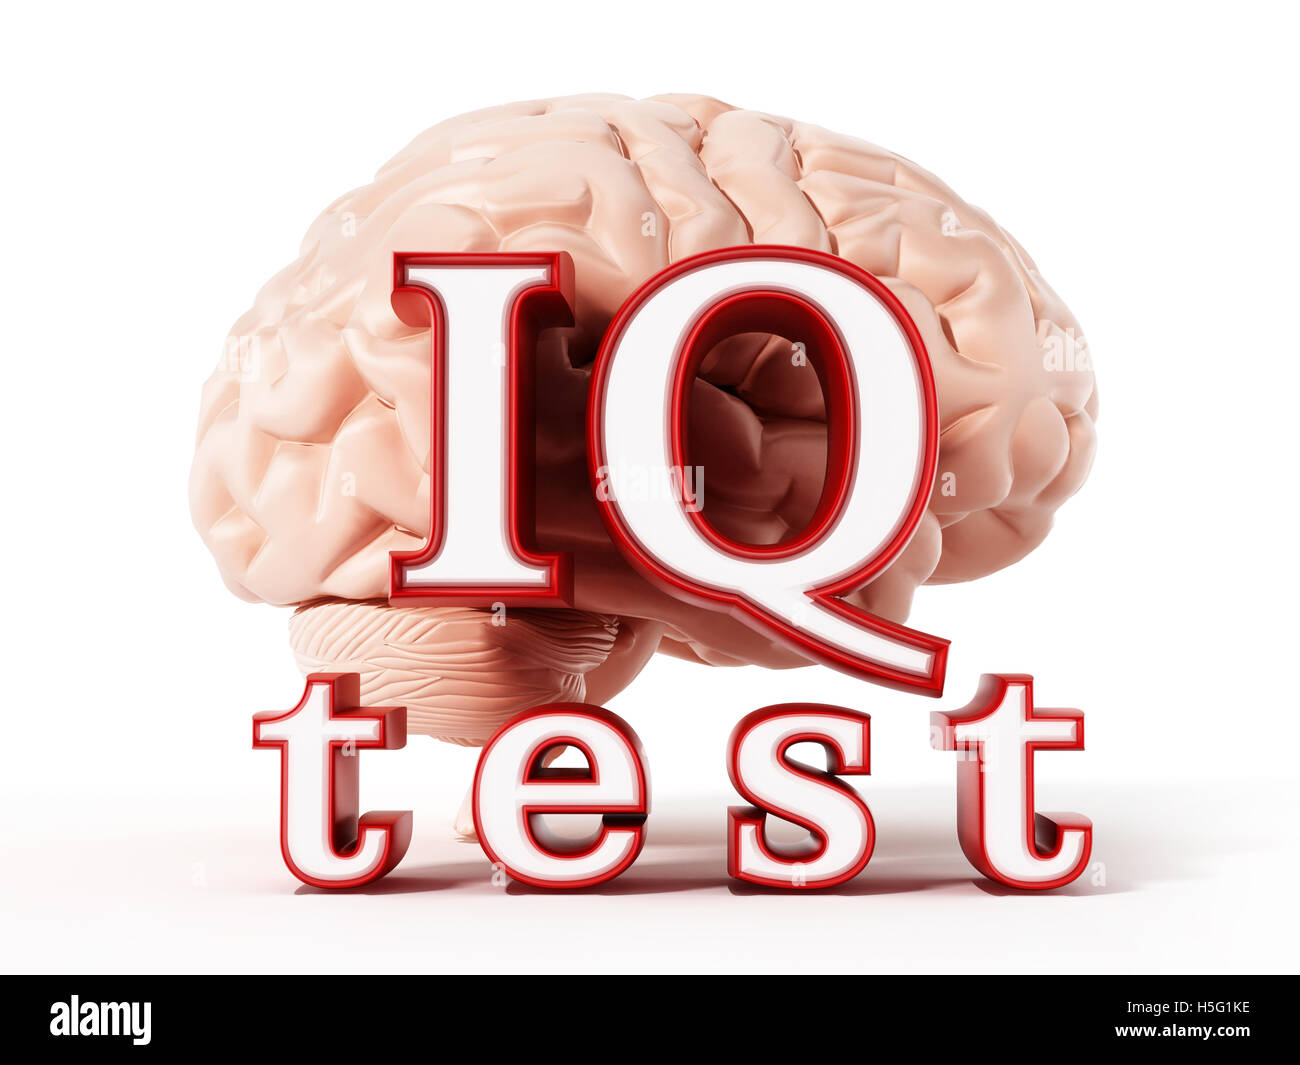 Human brain and IQ test text isolated on white background. 3D illustration. - Stock Image